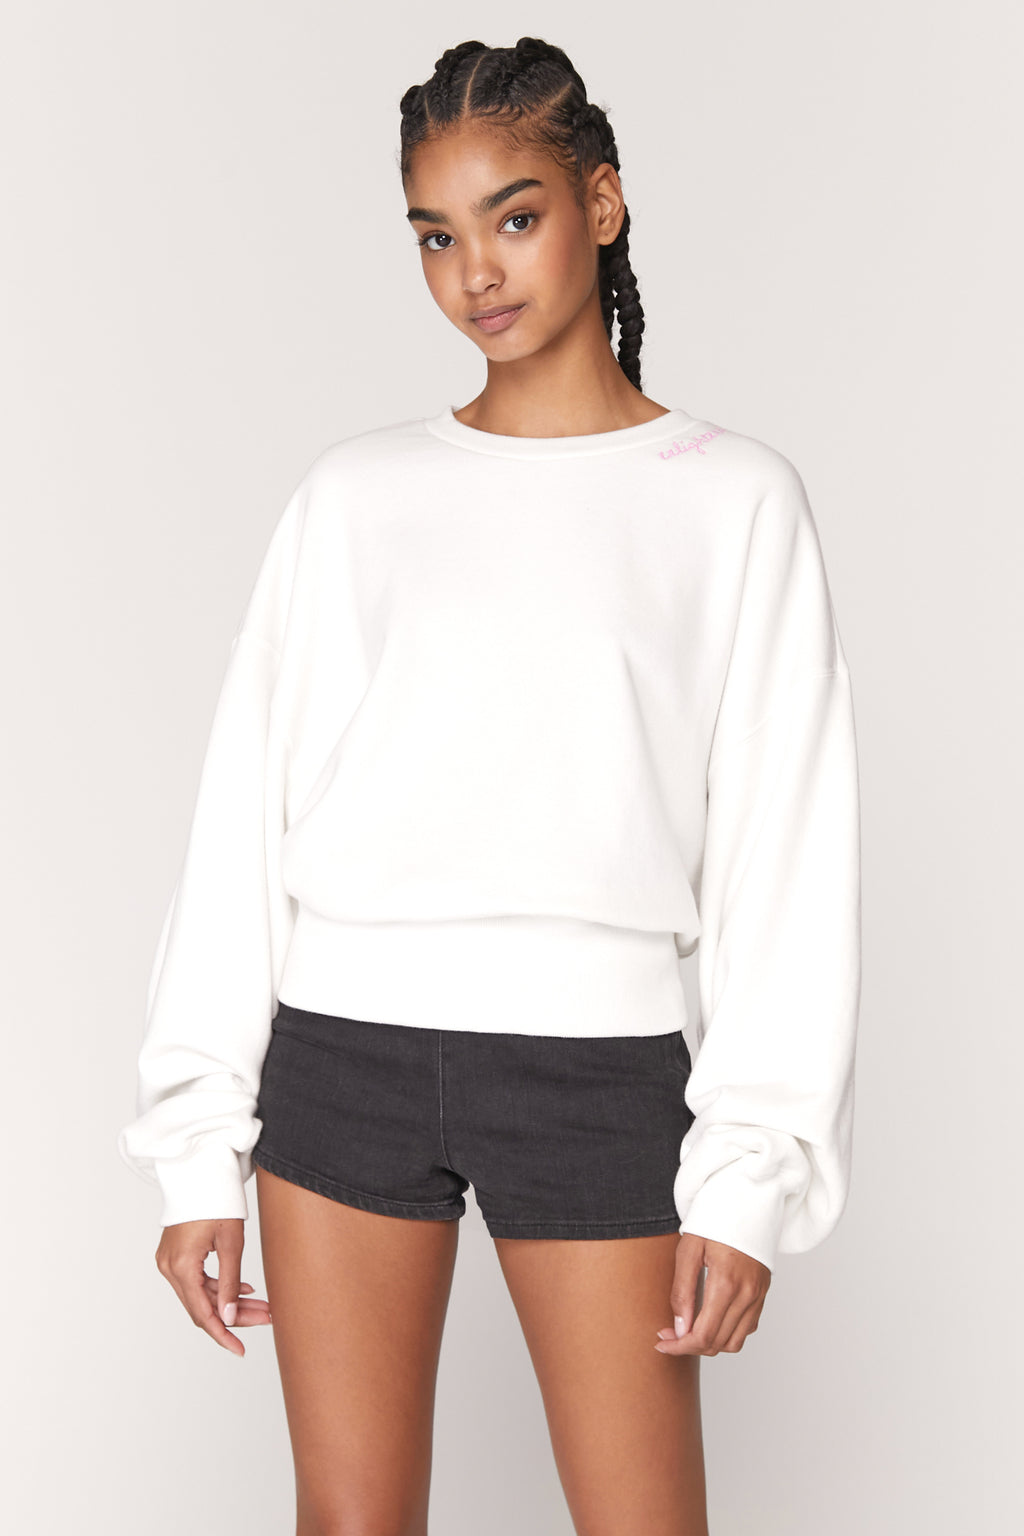 Enlightened Hailey Sweatshirt